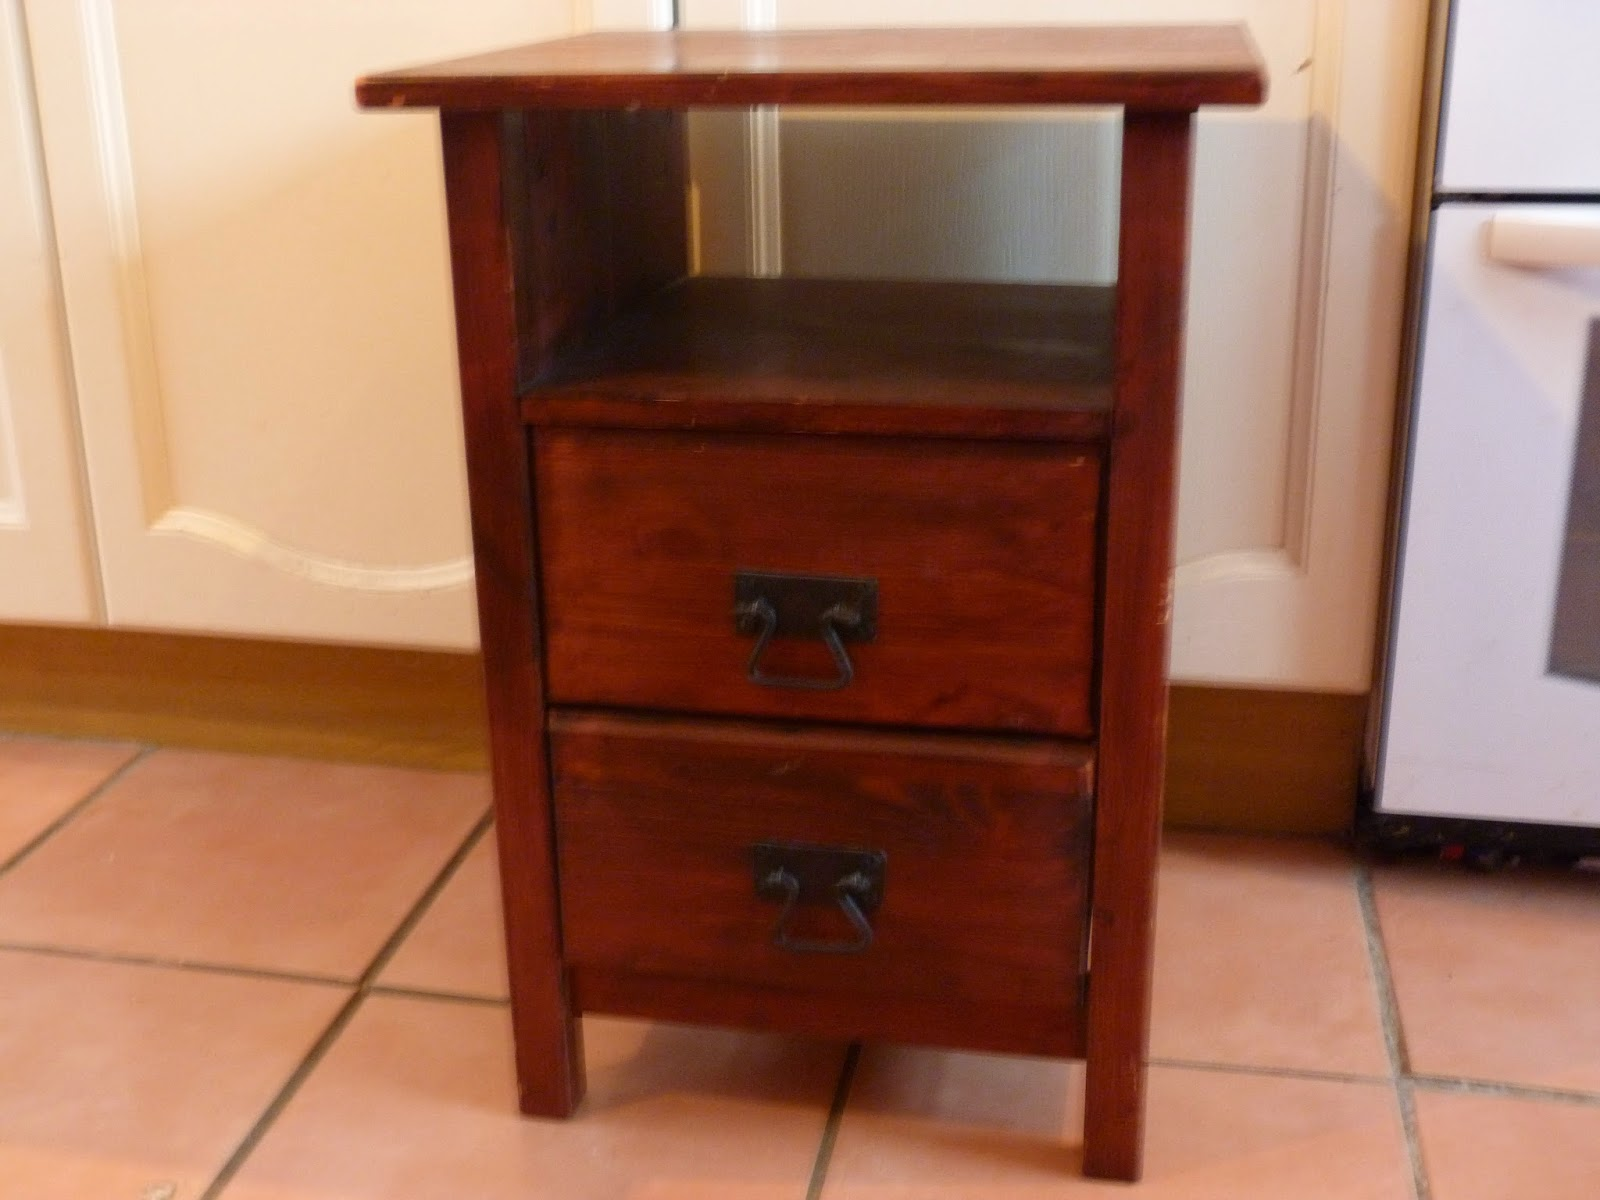 At Number 18 Upcycled Bedside Tables